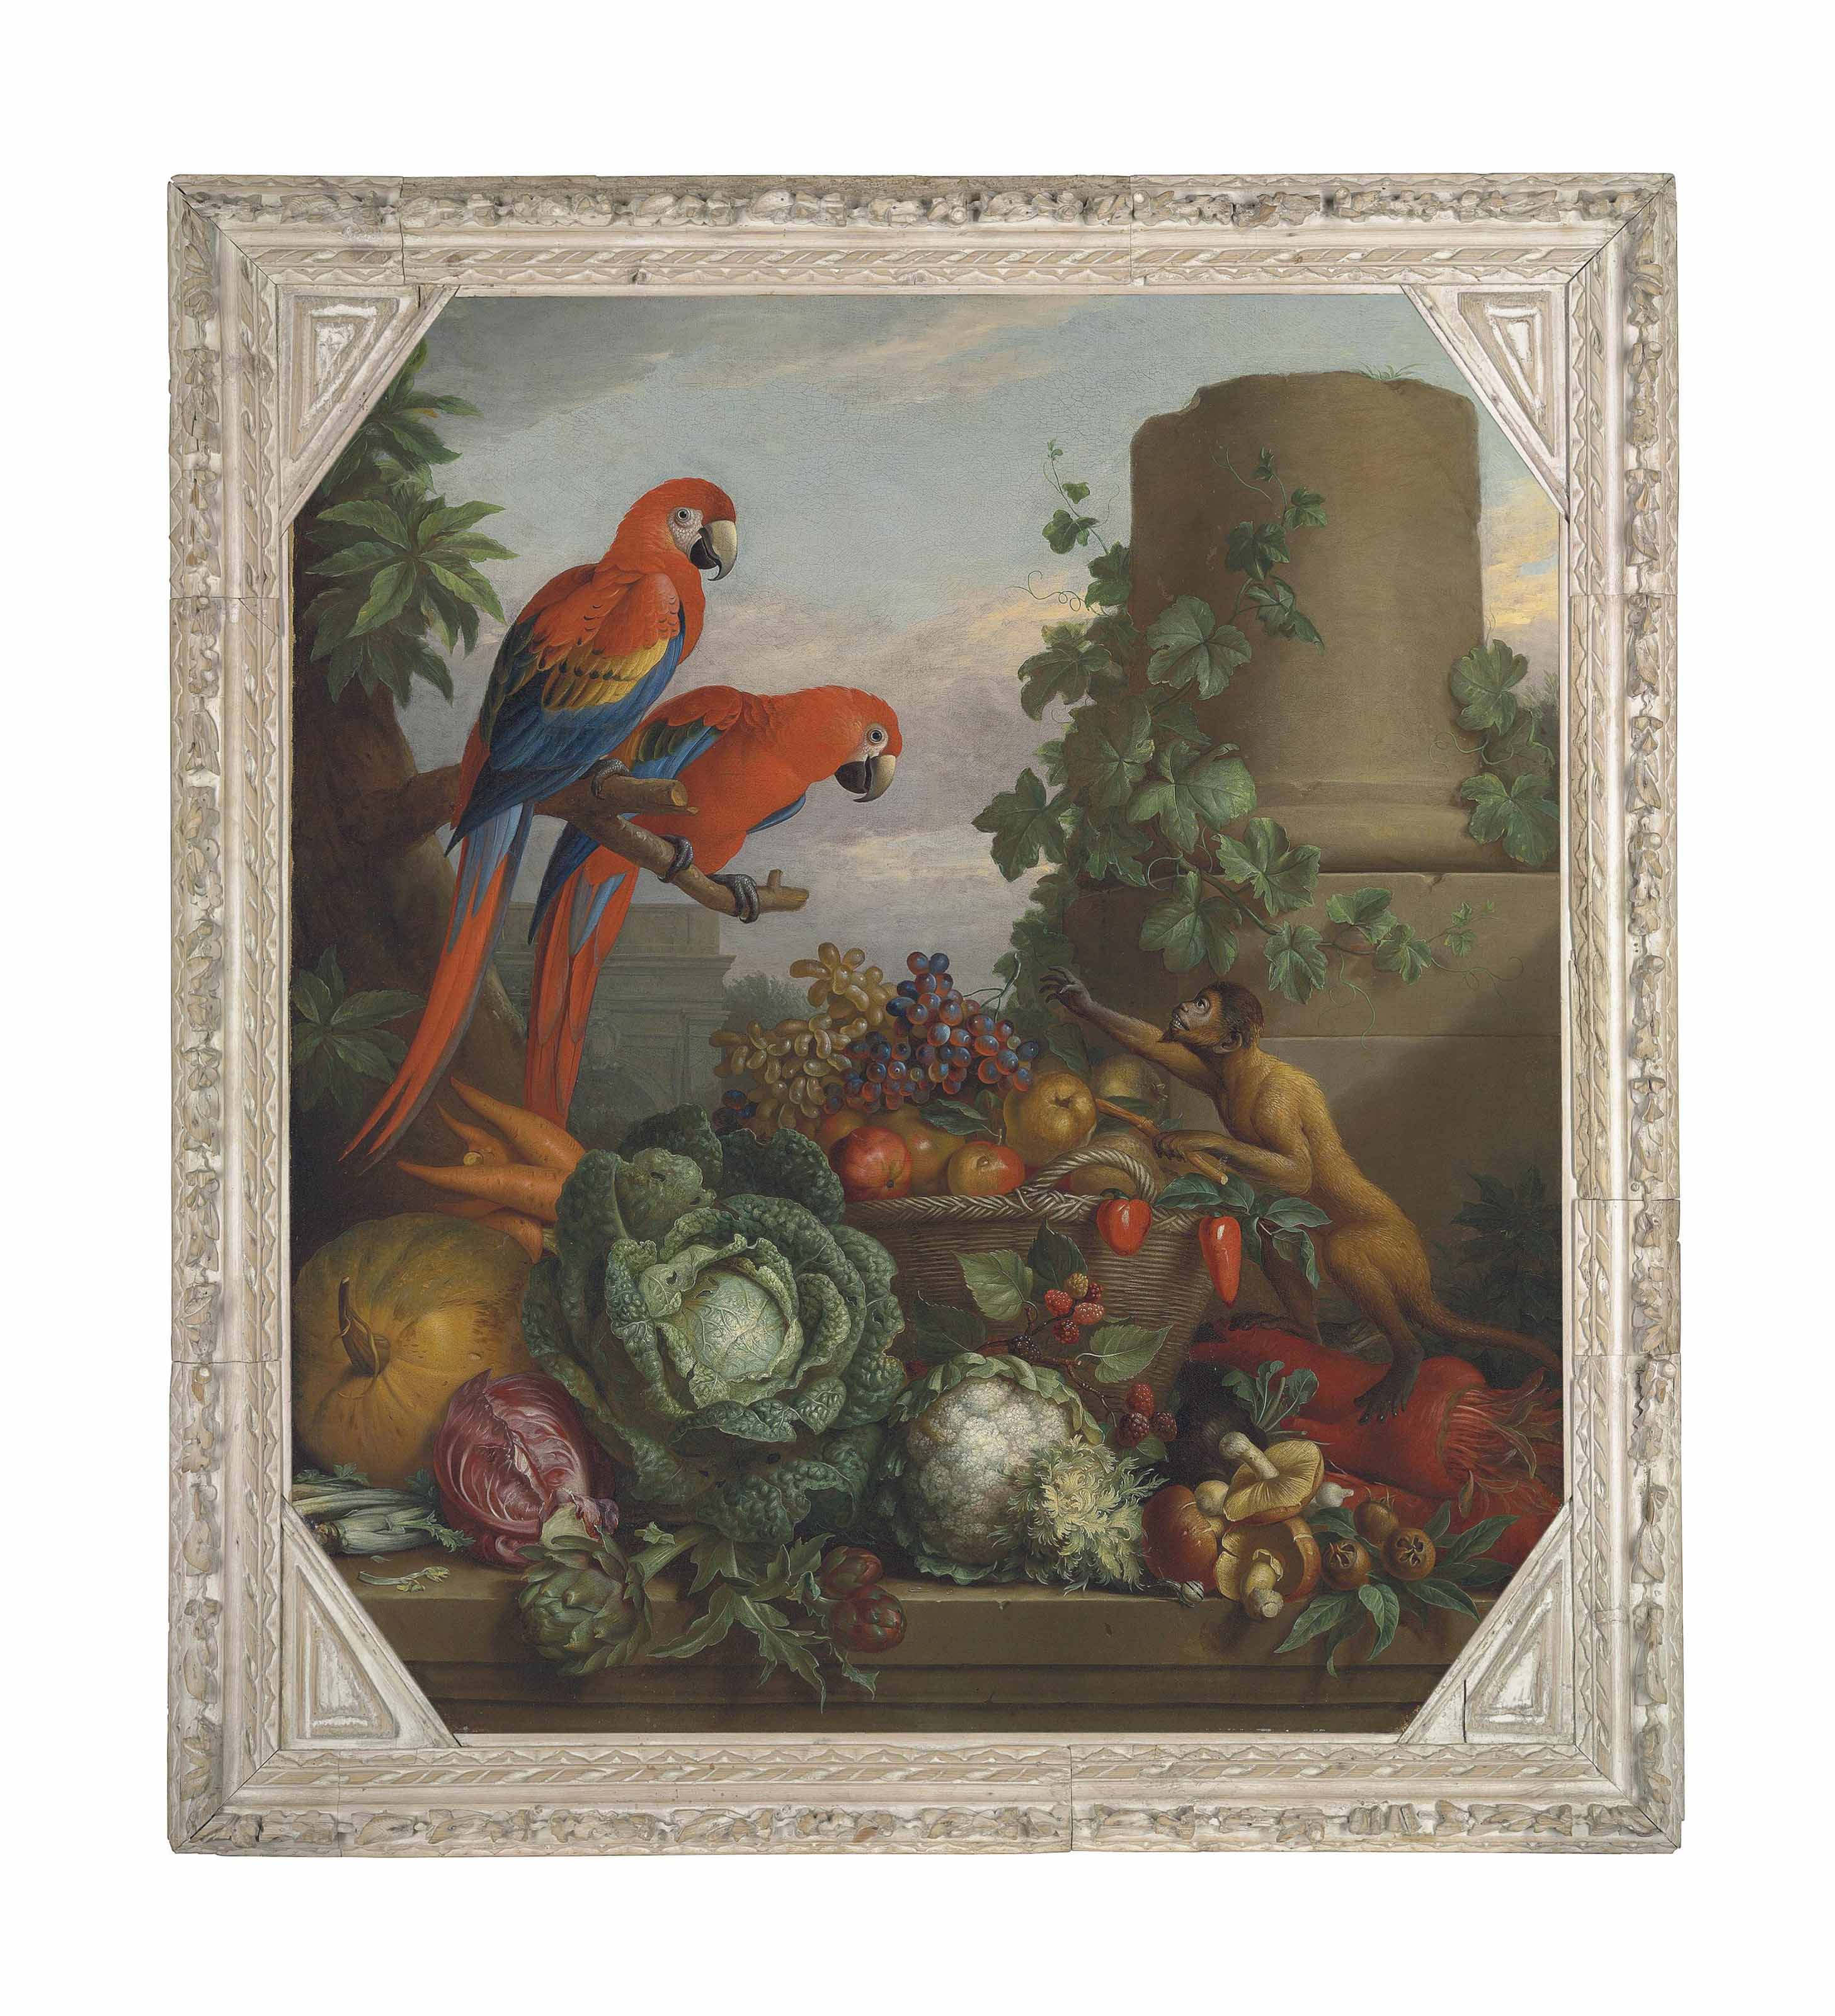 Two scarlet macaws perched on a tree branch by a monkey and a basket of fruit and vegetables on a ledge, in a classical landscape with ruins